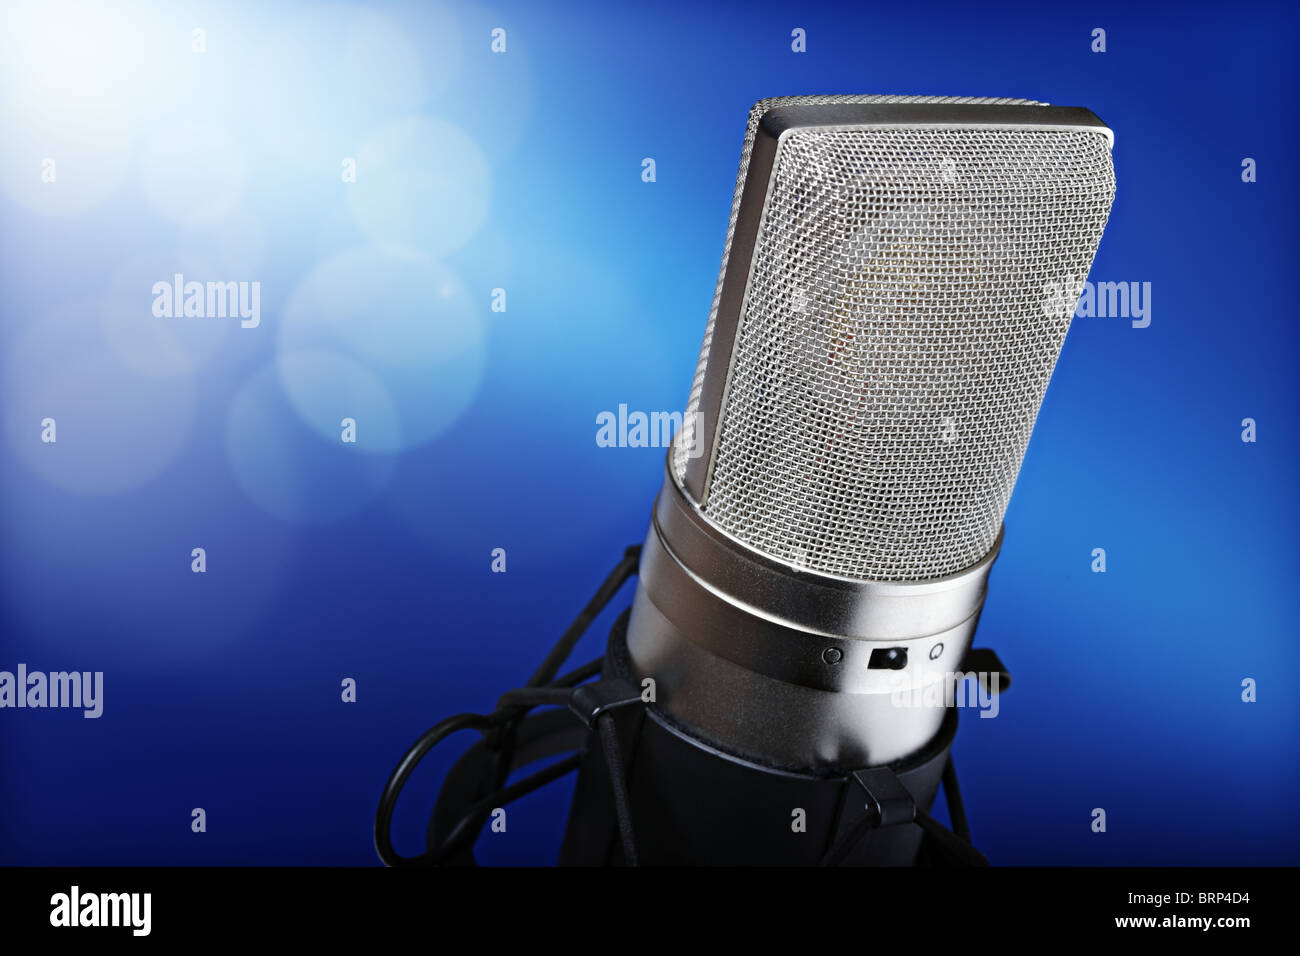 Microphone on stage - Stock Image